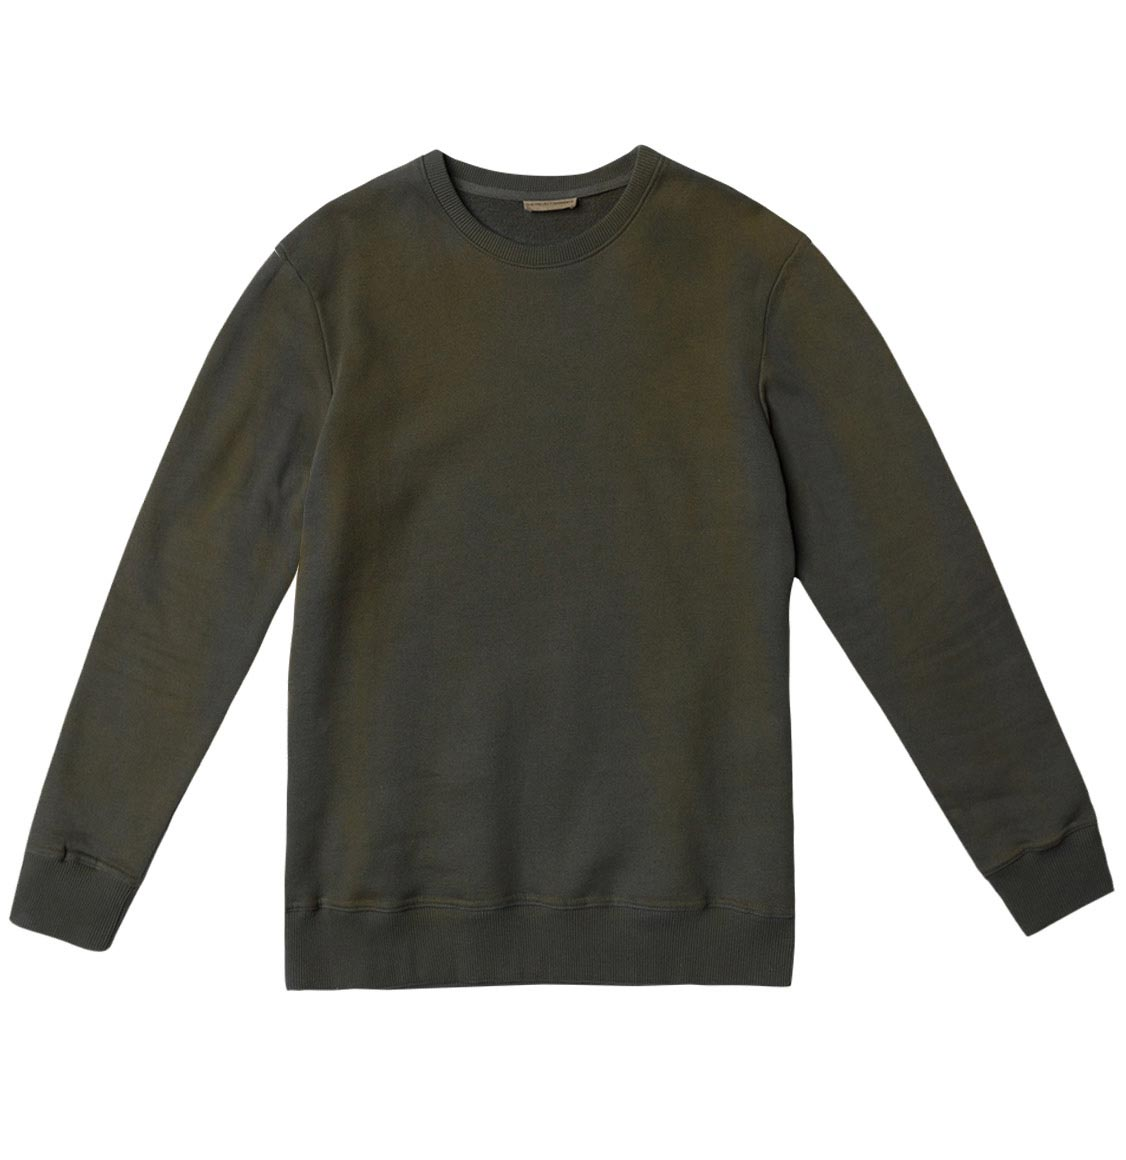 Acid Dye Organic Cotton Crew Neck Sweatshirt Light Khaki